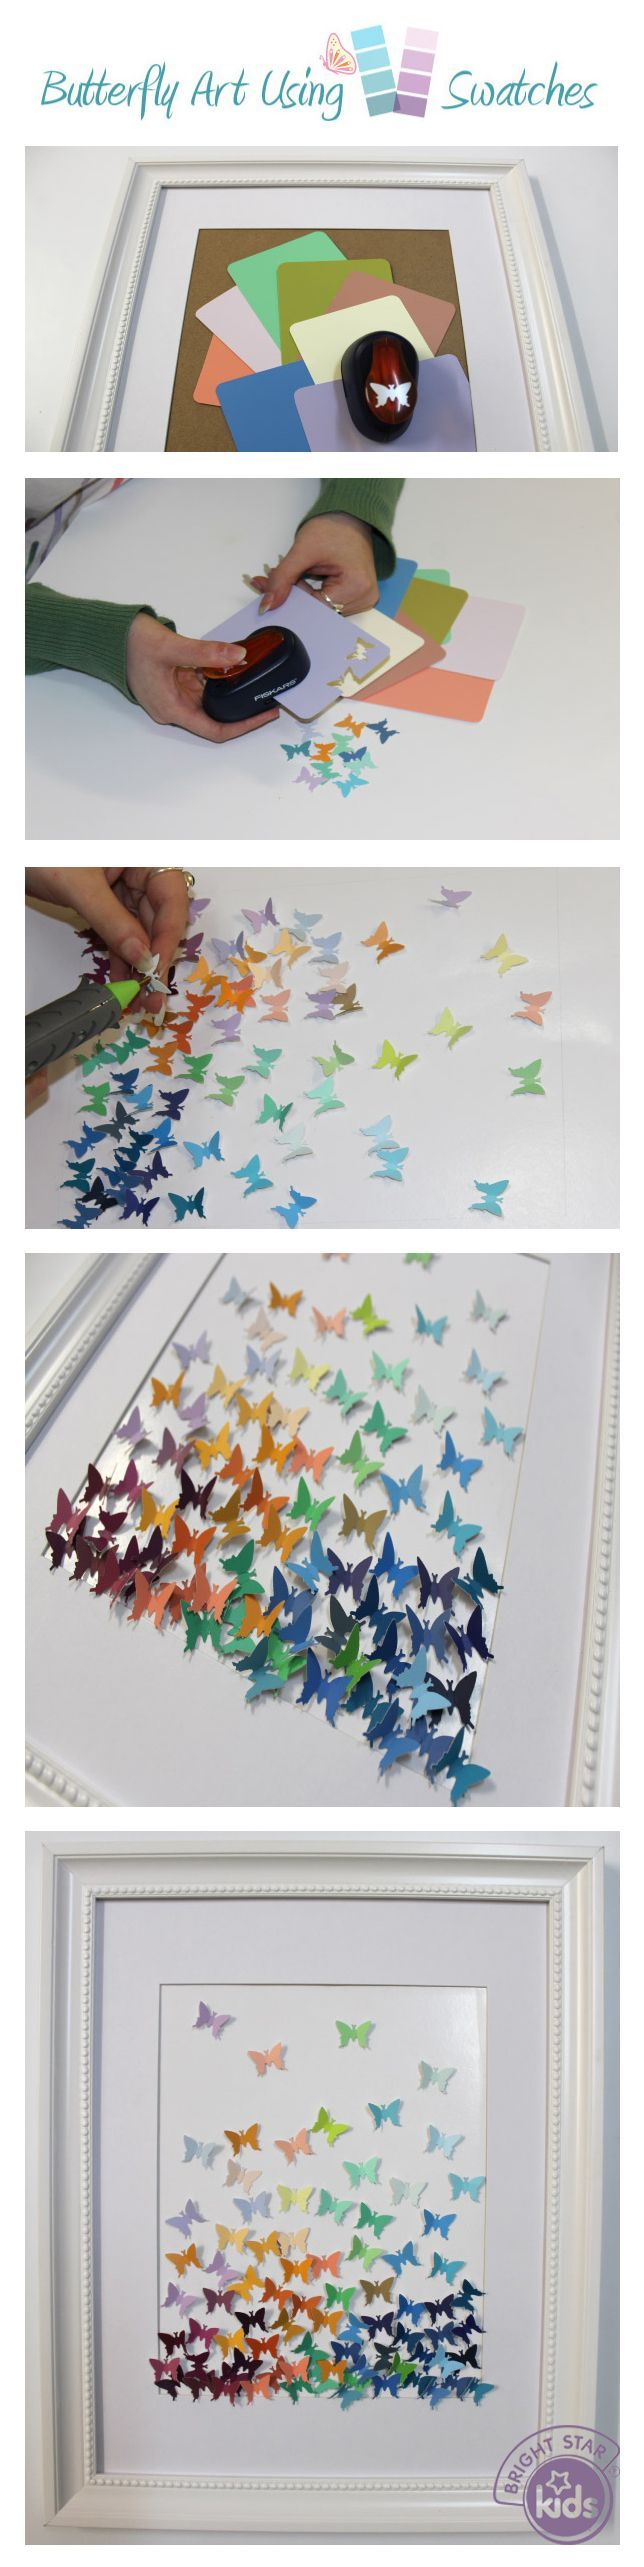 Butterfly Art Using Paint Swatches - Bright Star Kids Blog * You can get additional details at the image link.